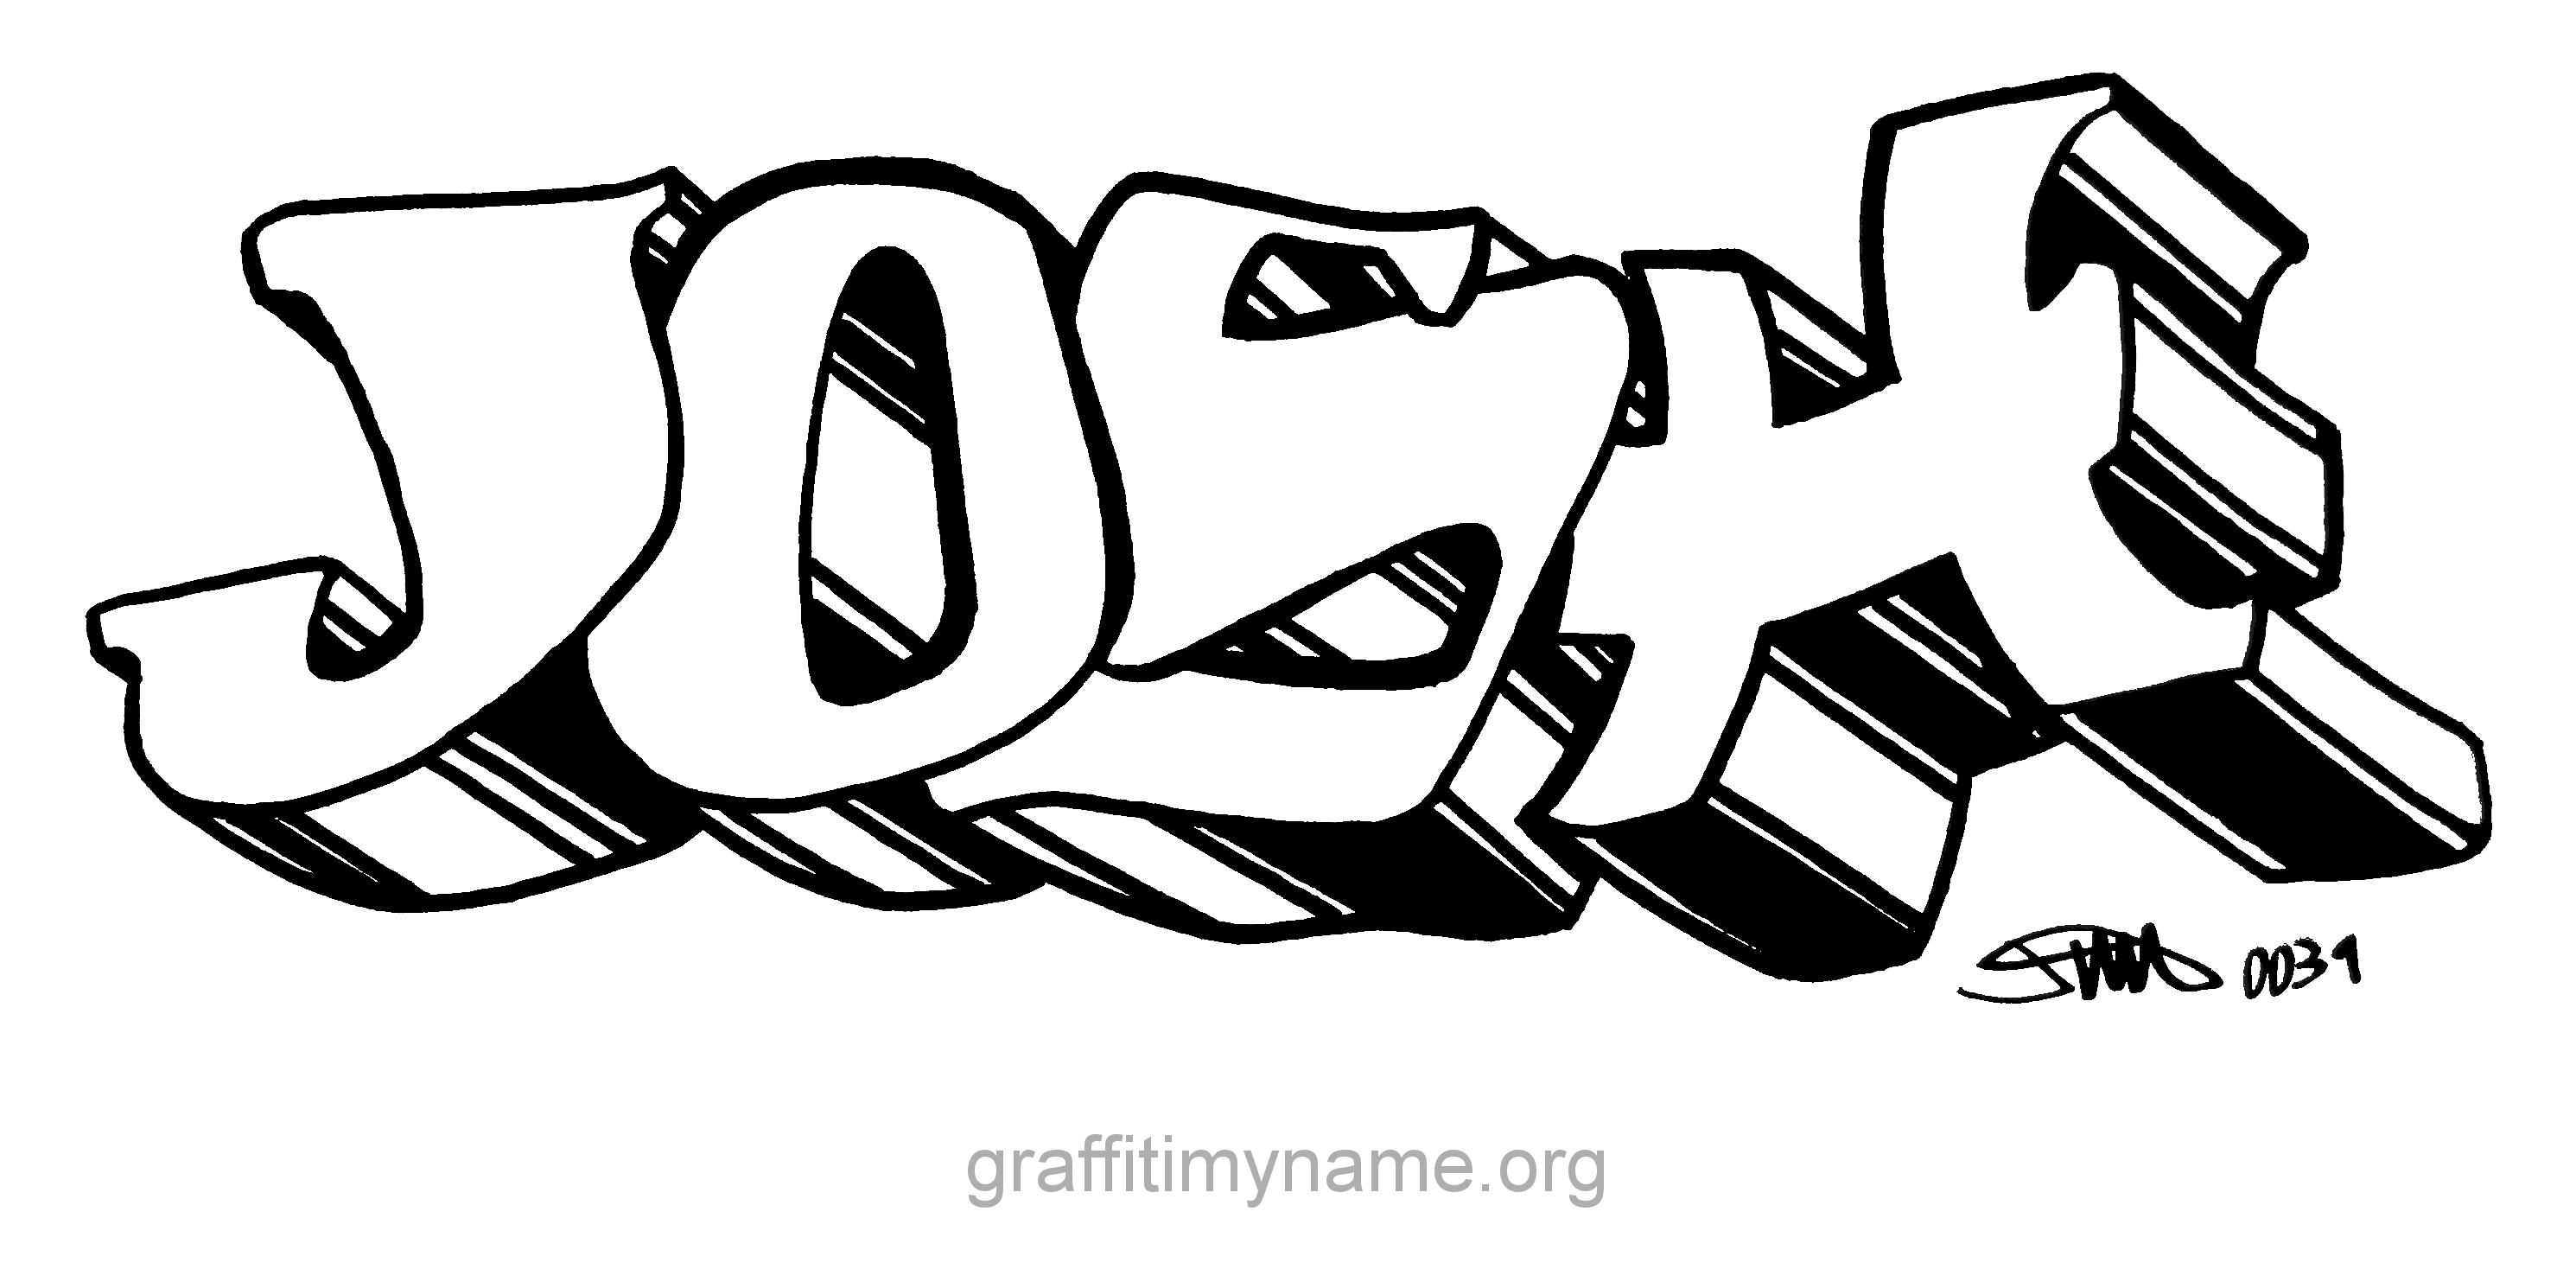 Josh graffiti my name josh in graffiti altavistaventures Image collections